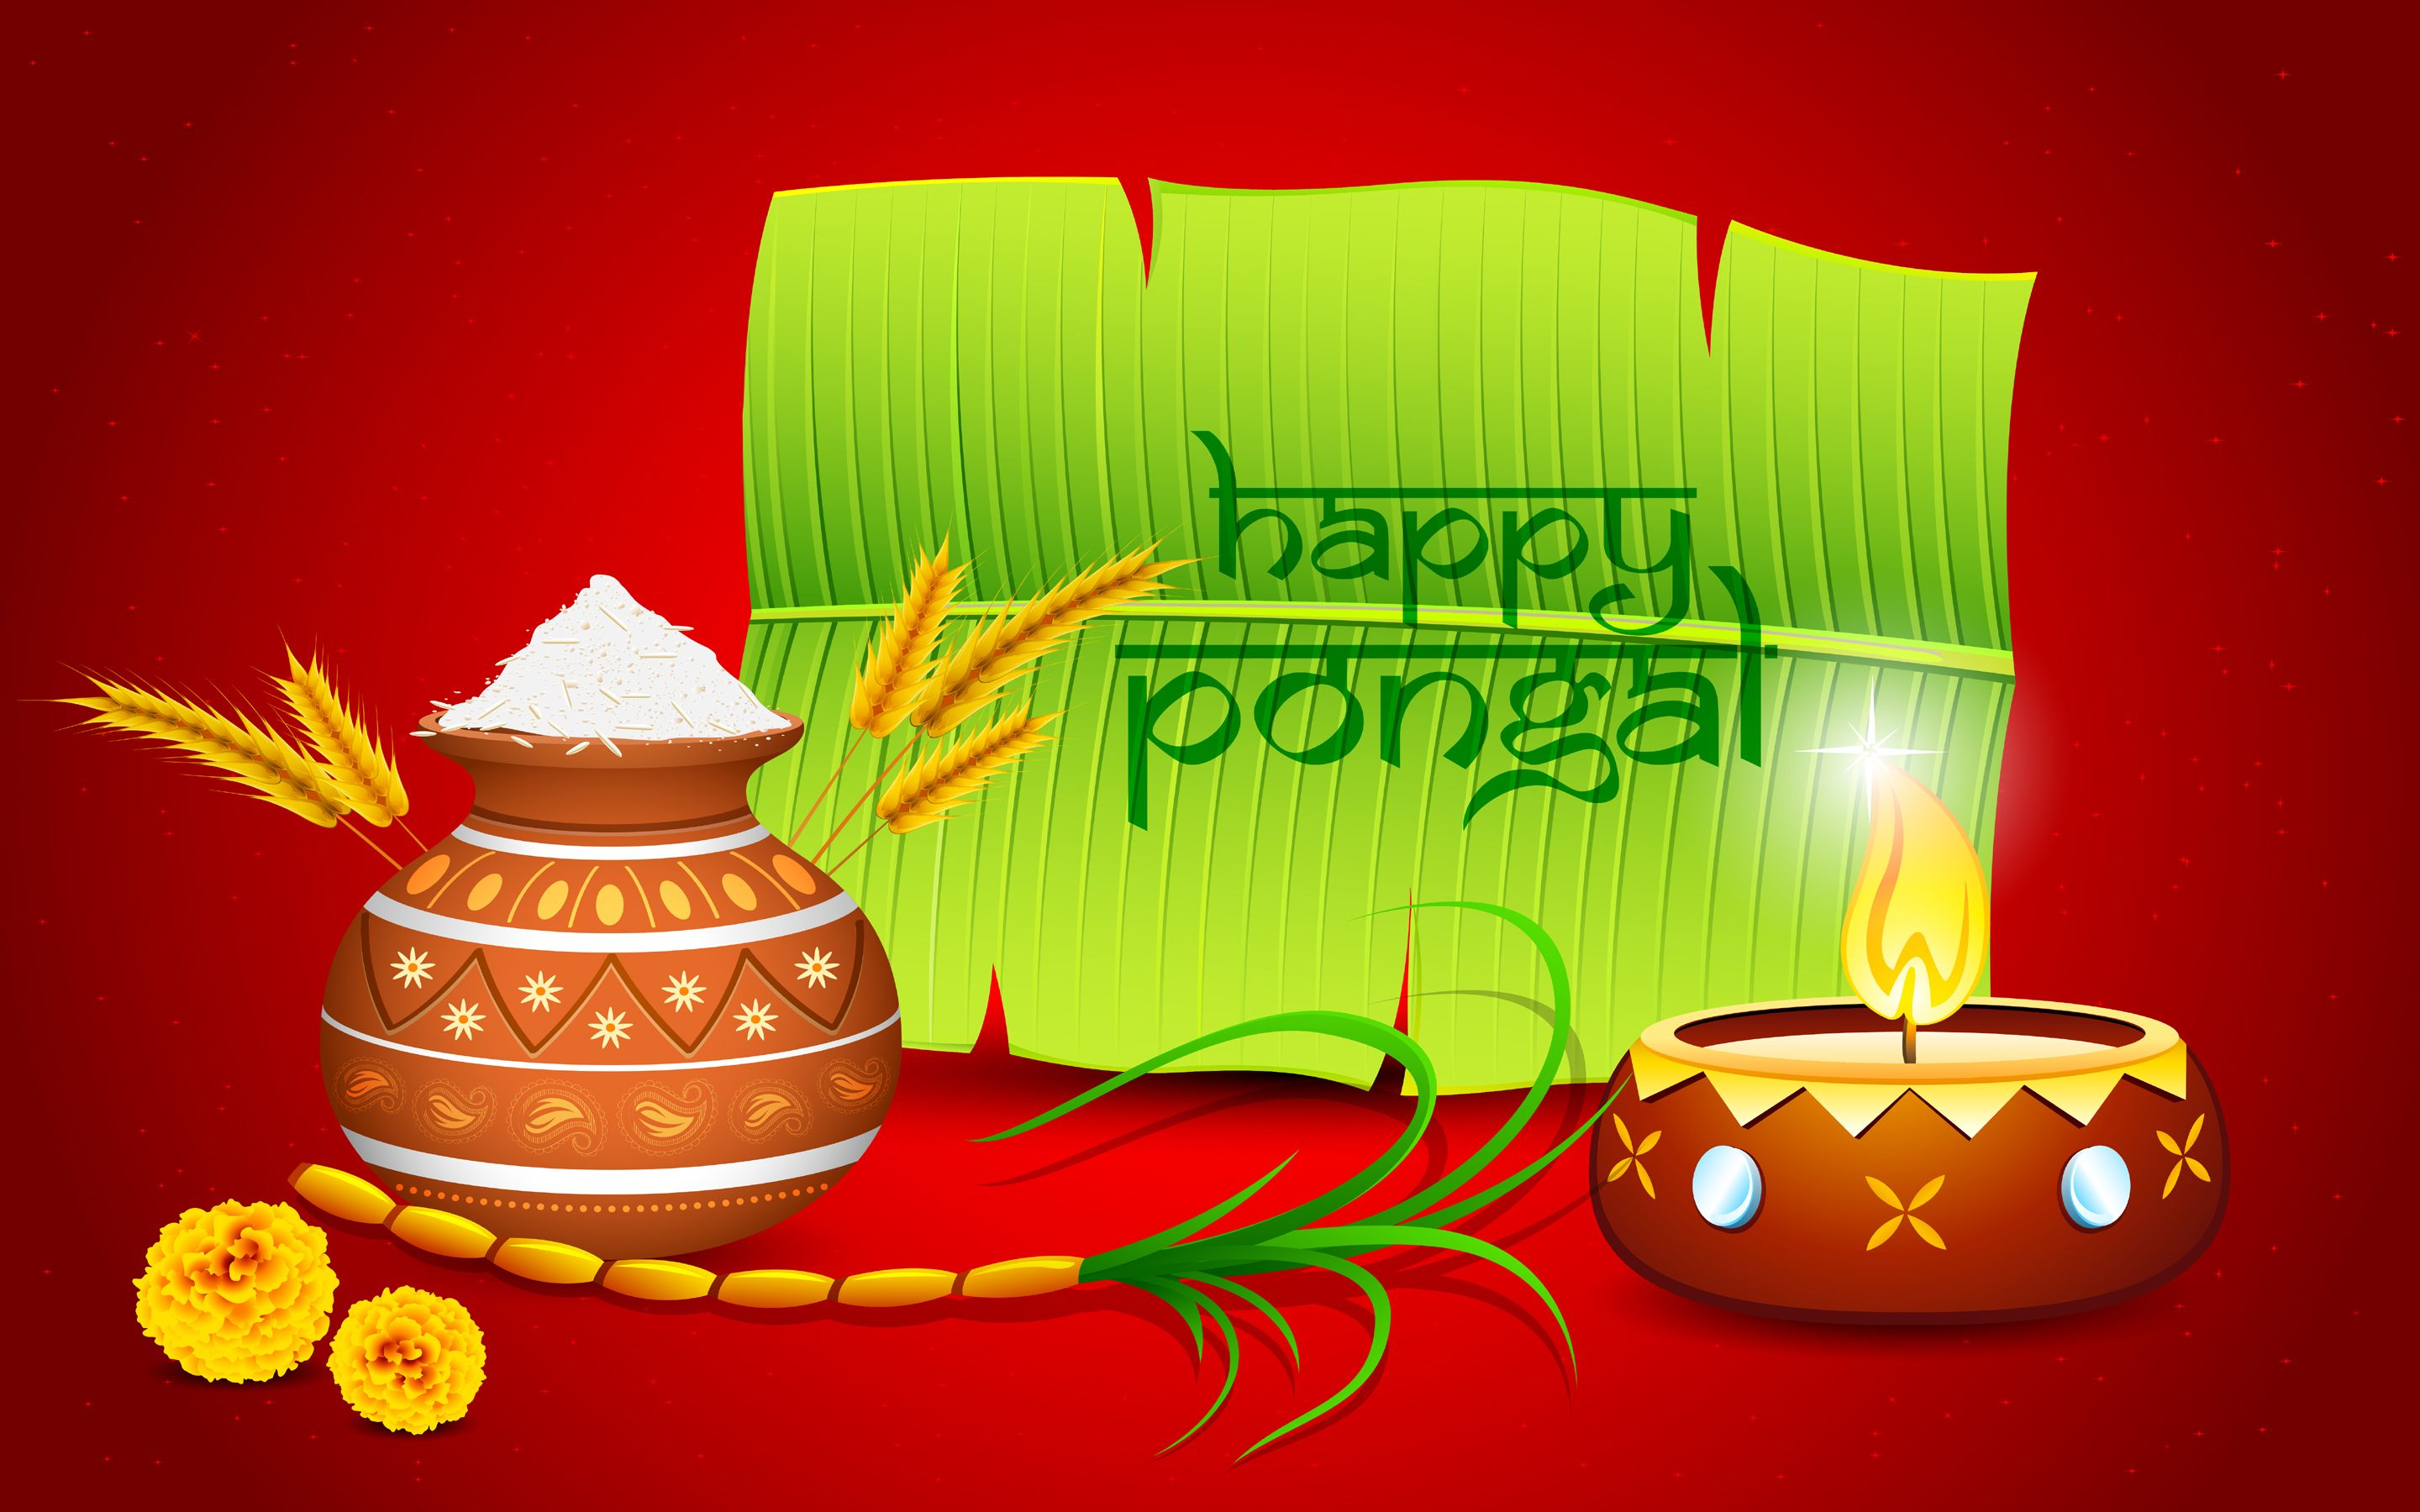 Nice Wallpapers Happy New Year Greetings Quotes 1080p Nice Greetings For Pongal Festival In 1080p Happy Pongal